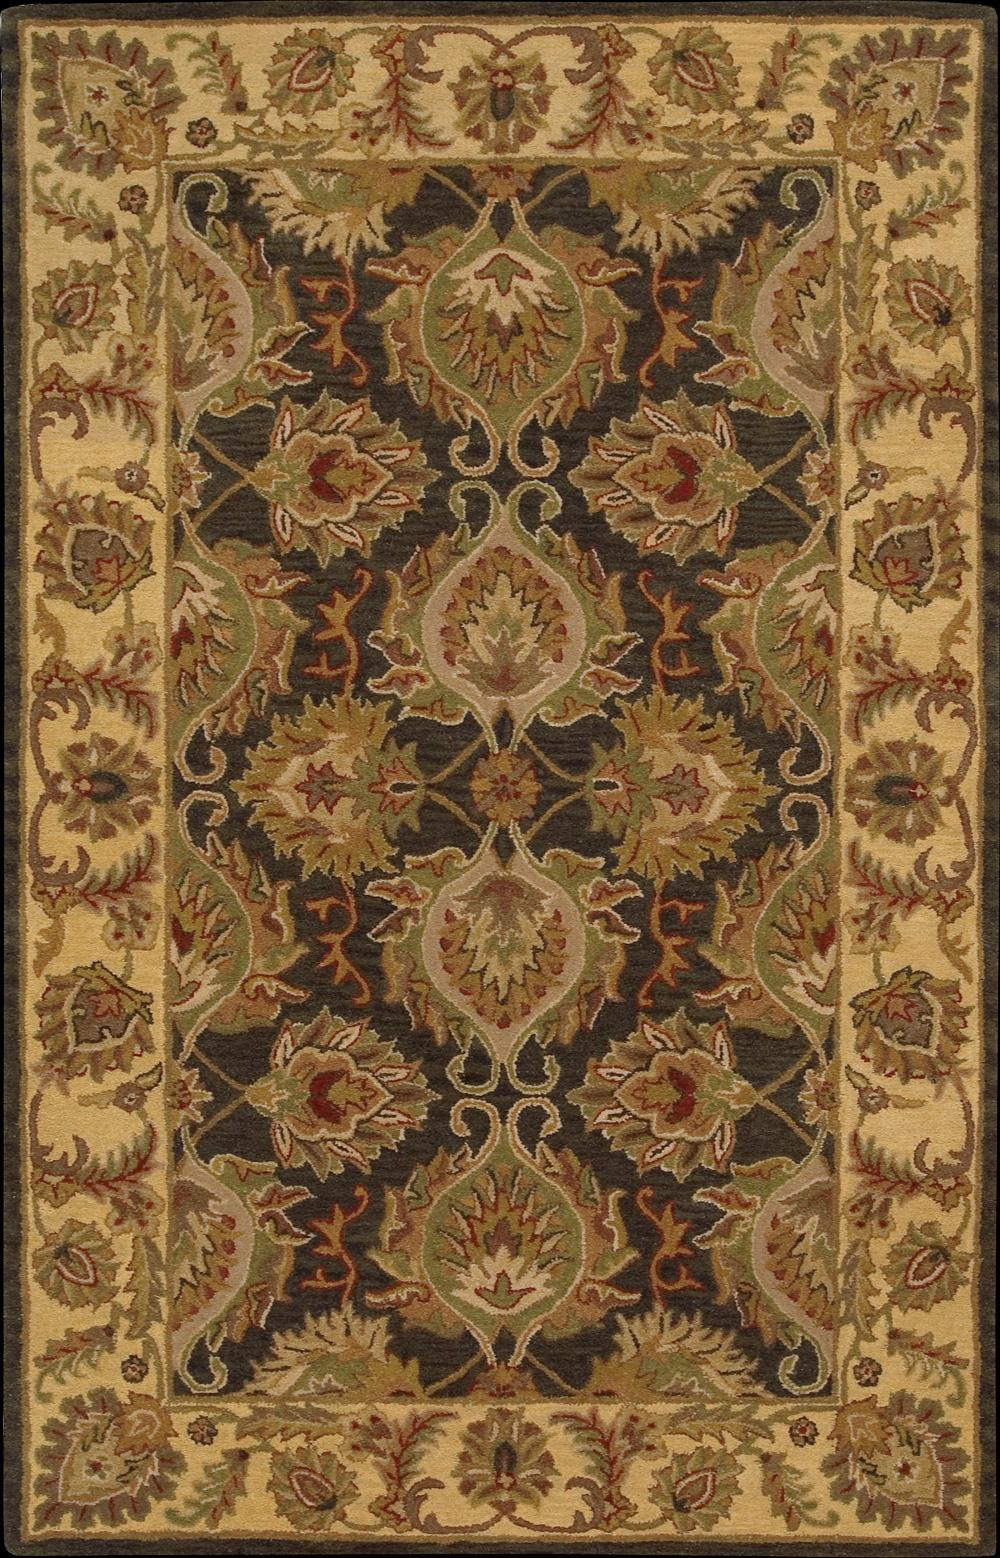 Nourison India House Area Rug 5' x 8' - Item Number: 80358